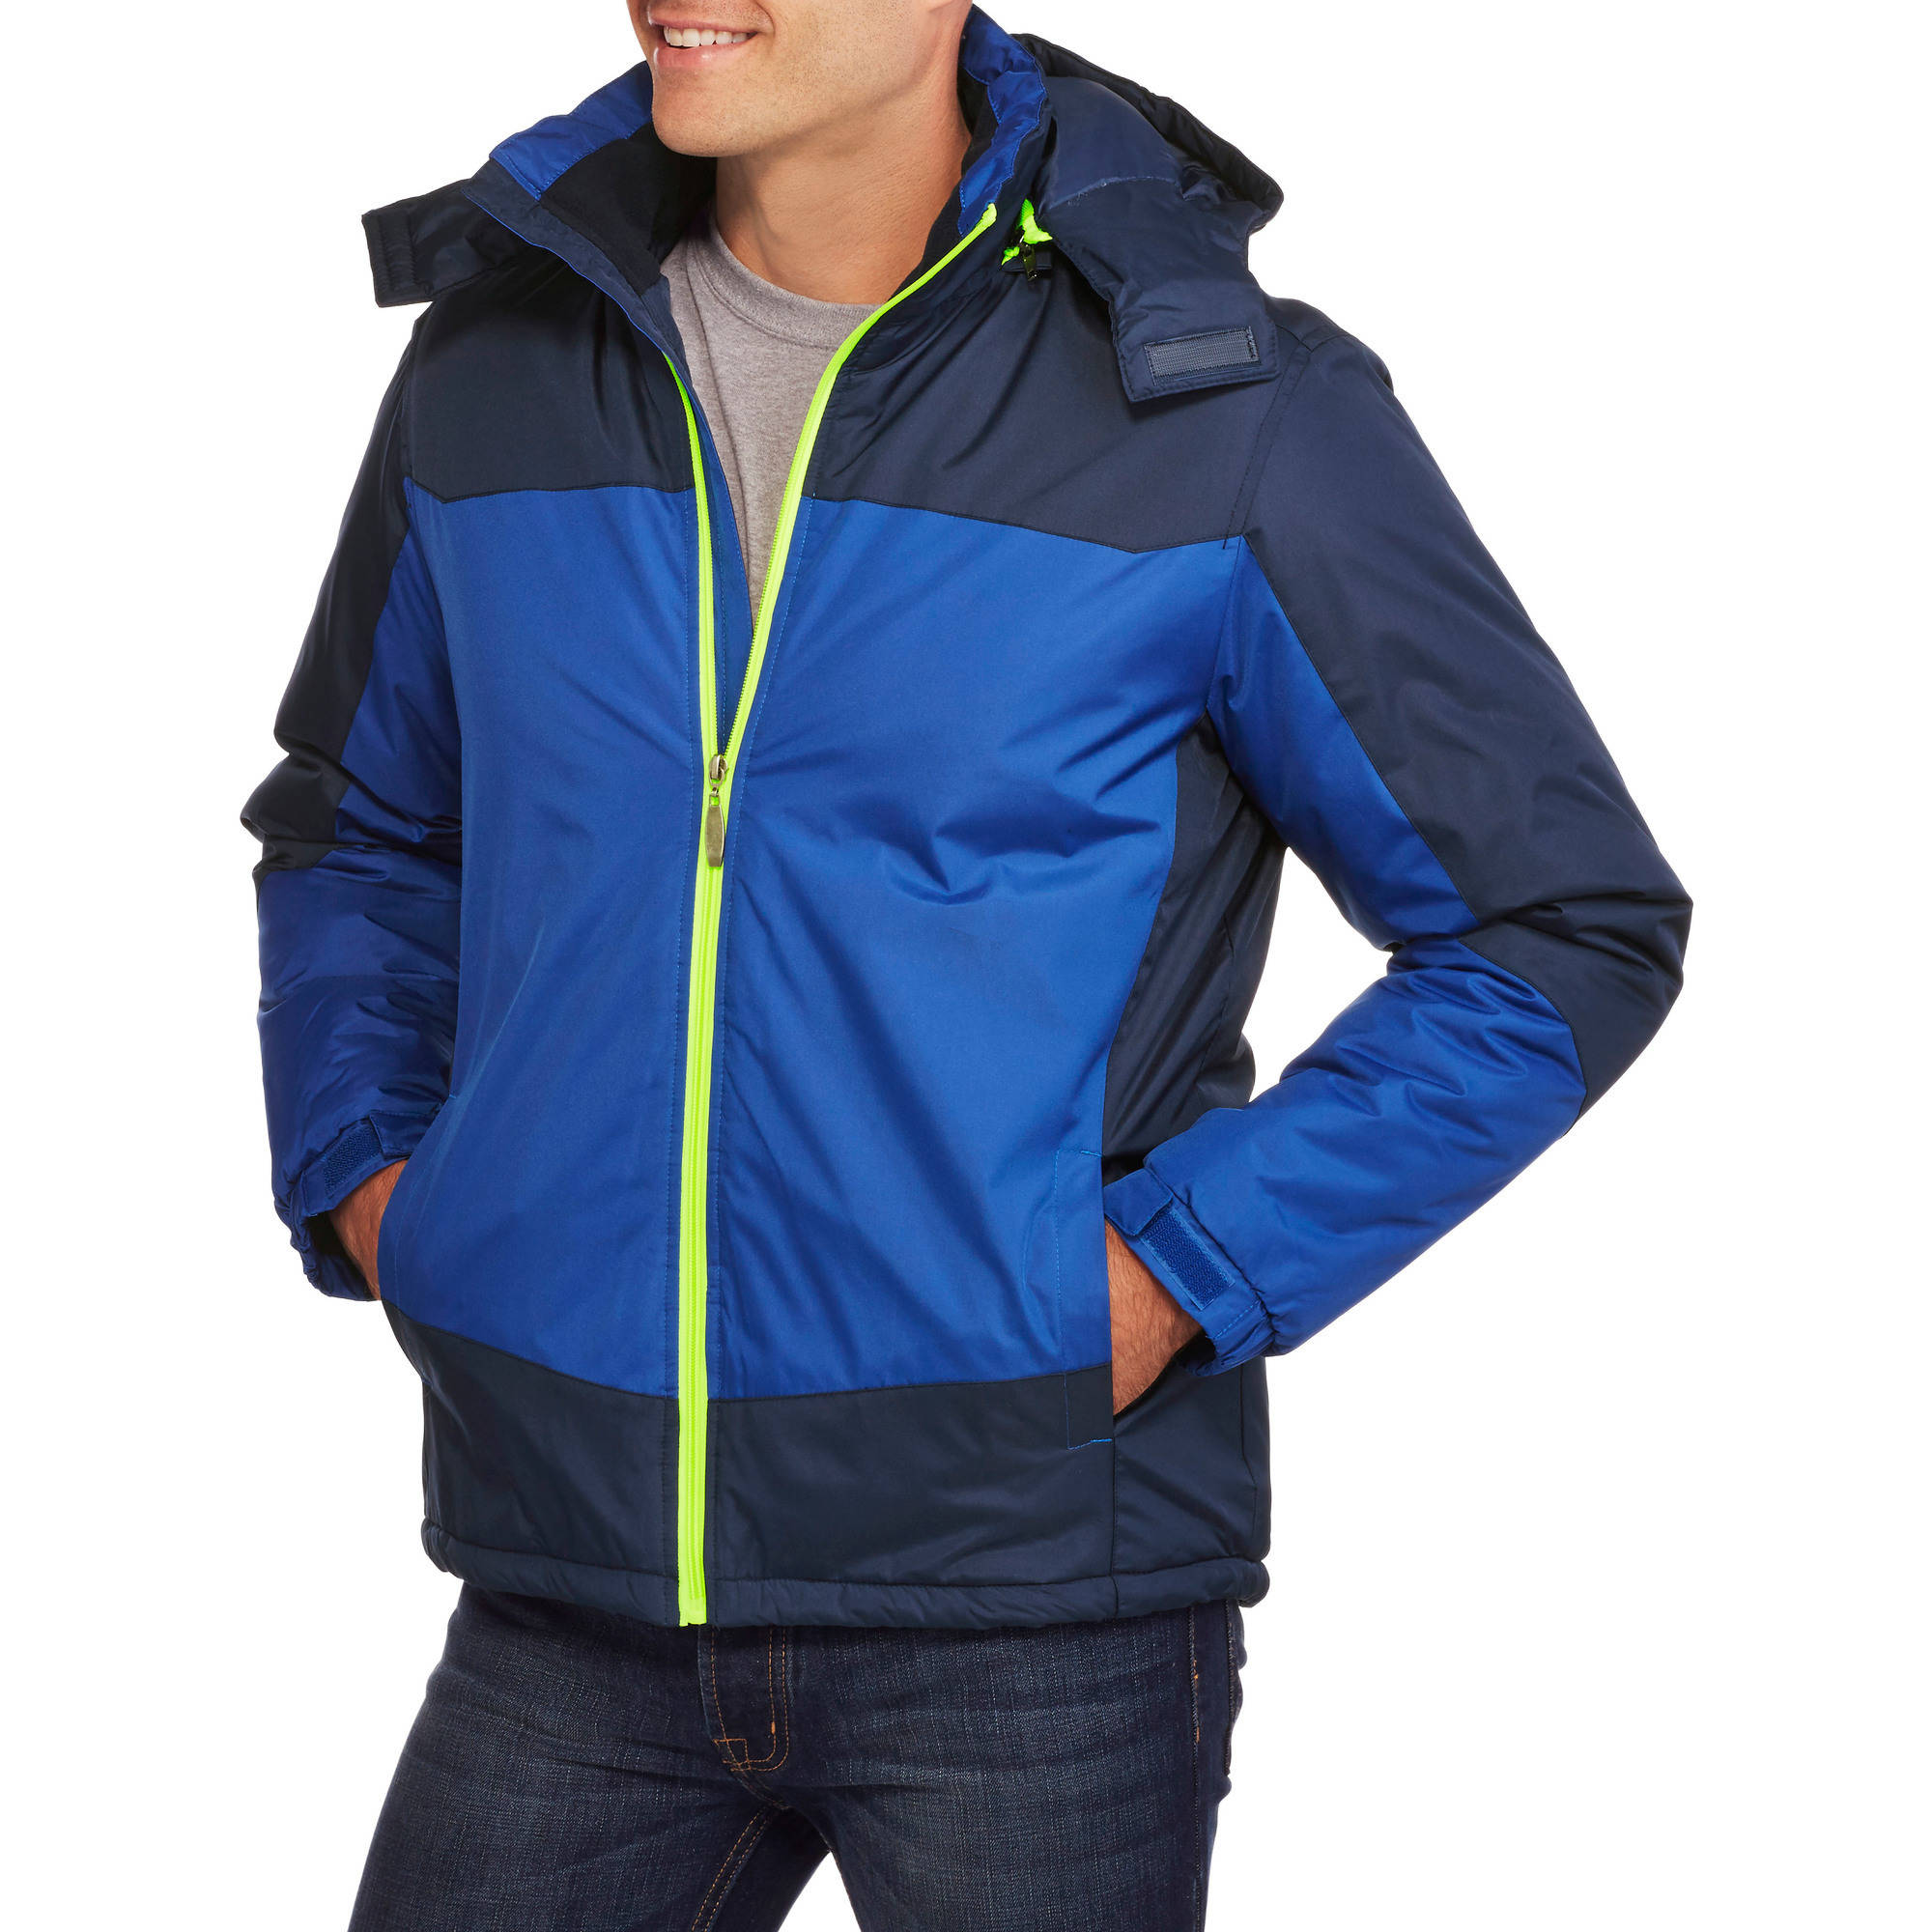 Climate Concepts Men's Colorblock Mid Weight Jacket with Removable Hood